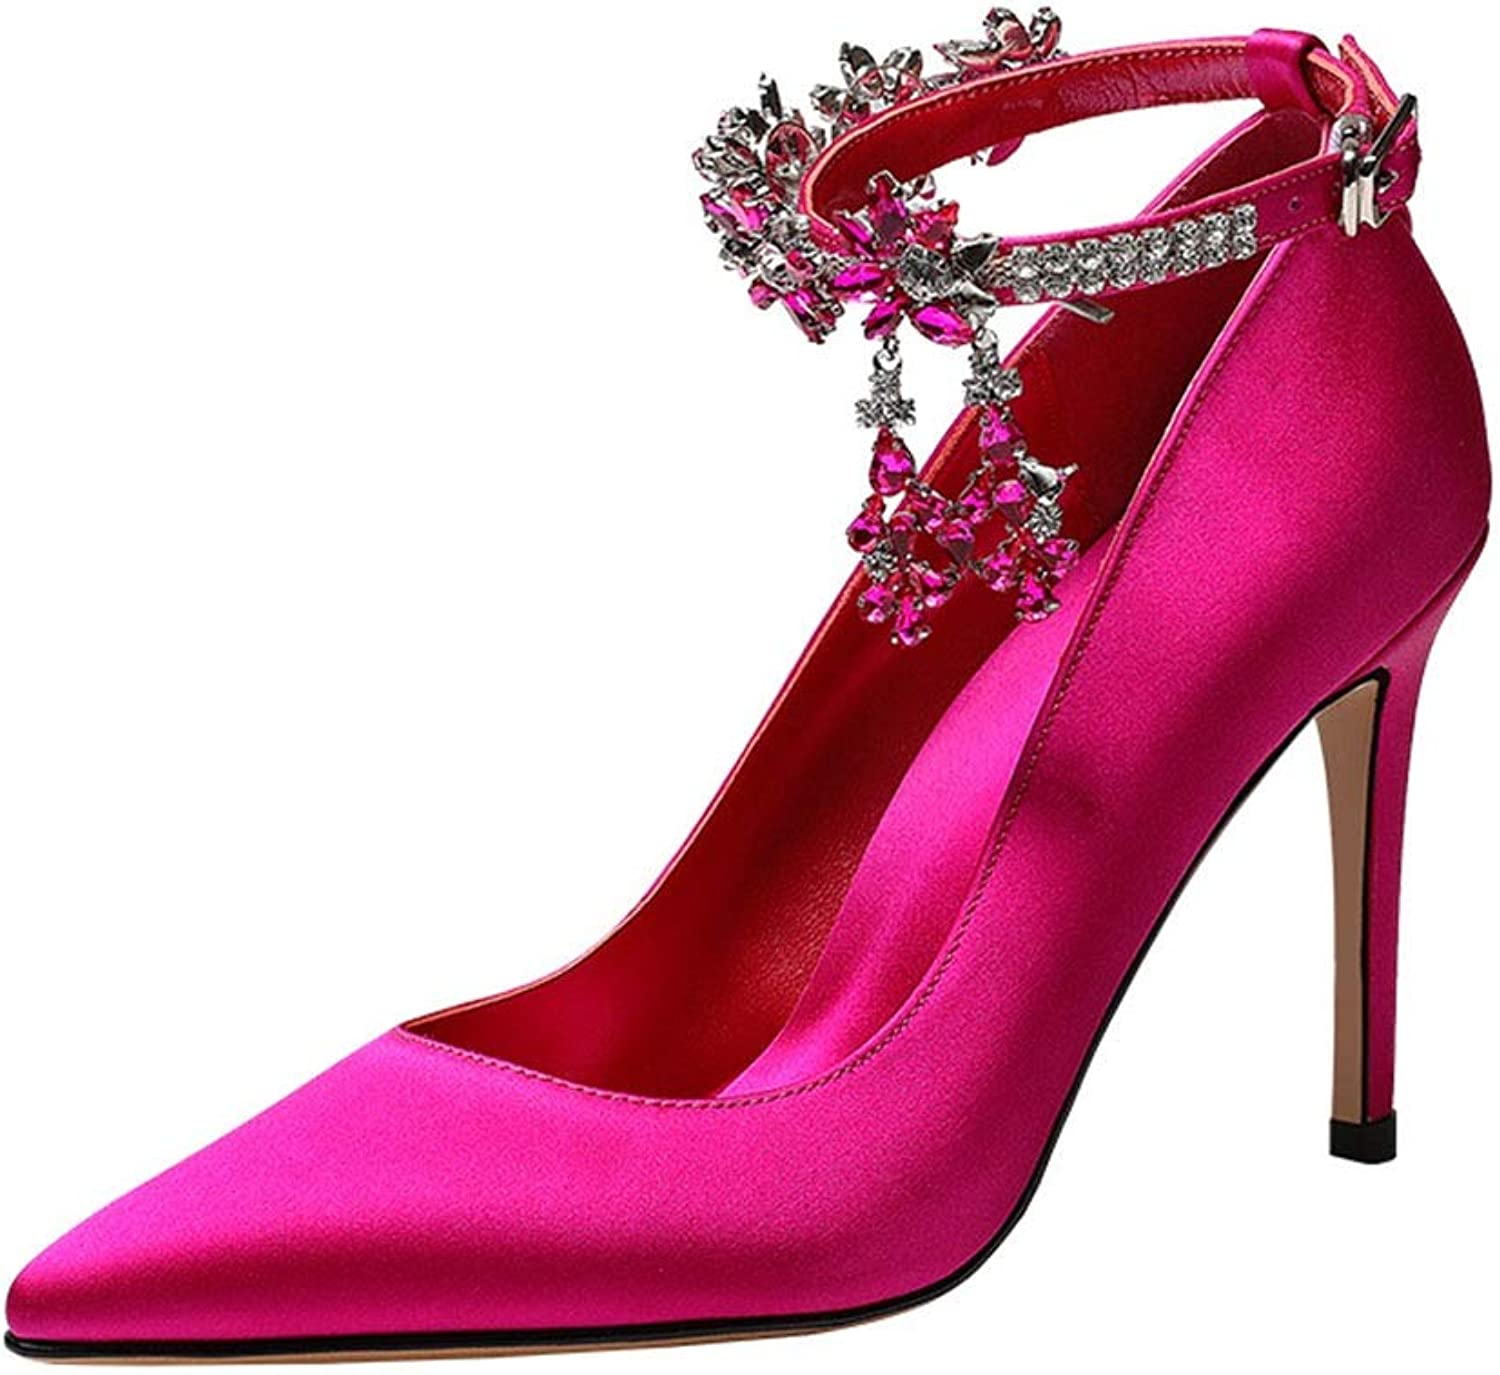 Sandals Women's shoes Sandals Summer Single shoes Pointed High Heels Satin Stiletto shoes Diamond Sexy Sandals Dating shoes, High Heels 9.8 cm (color   Pink, Size   38)